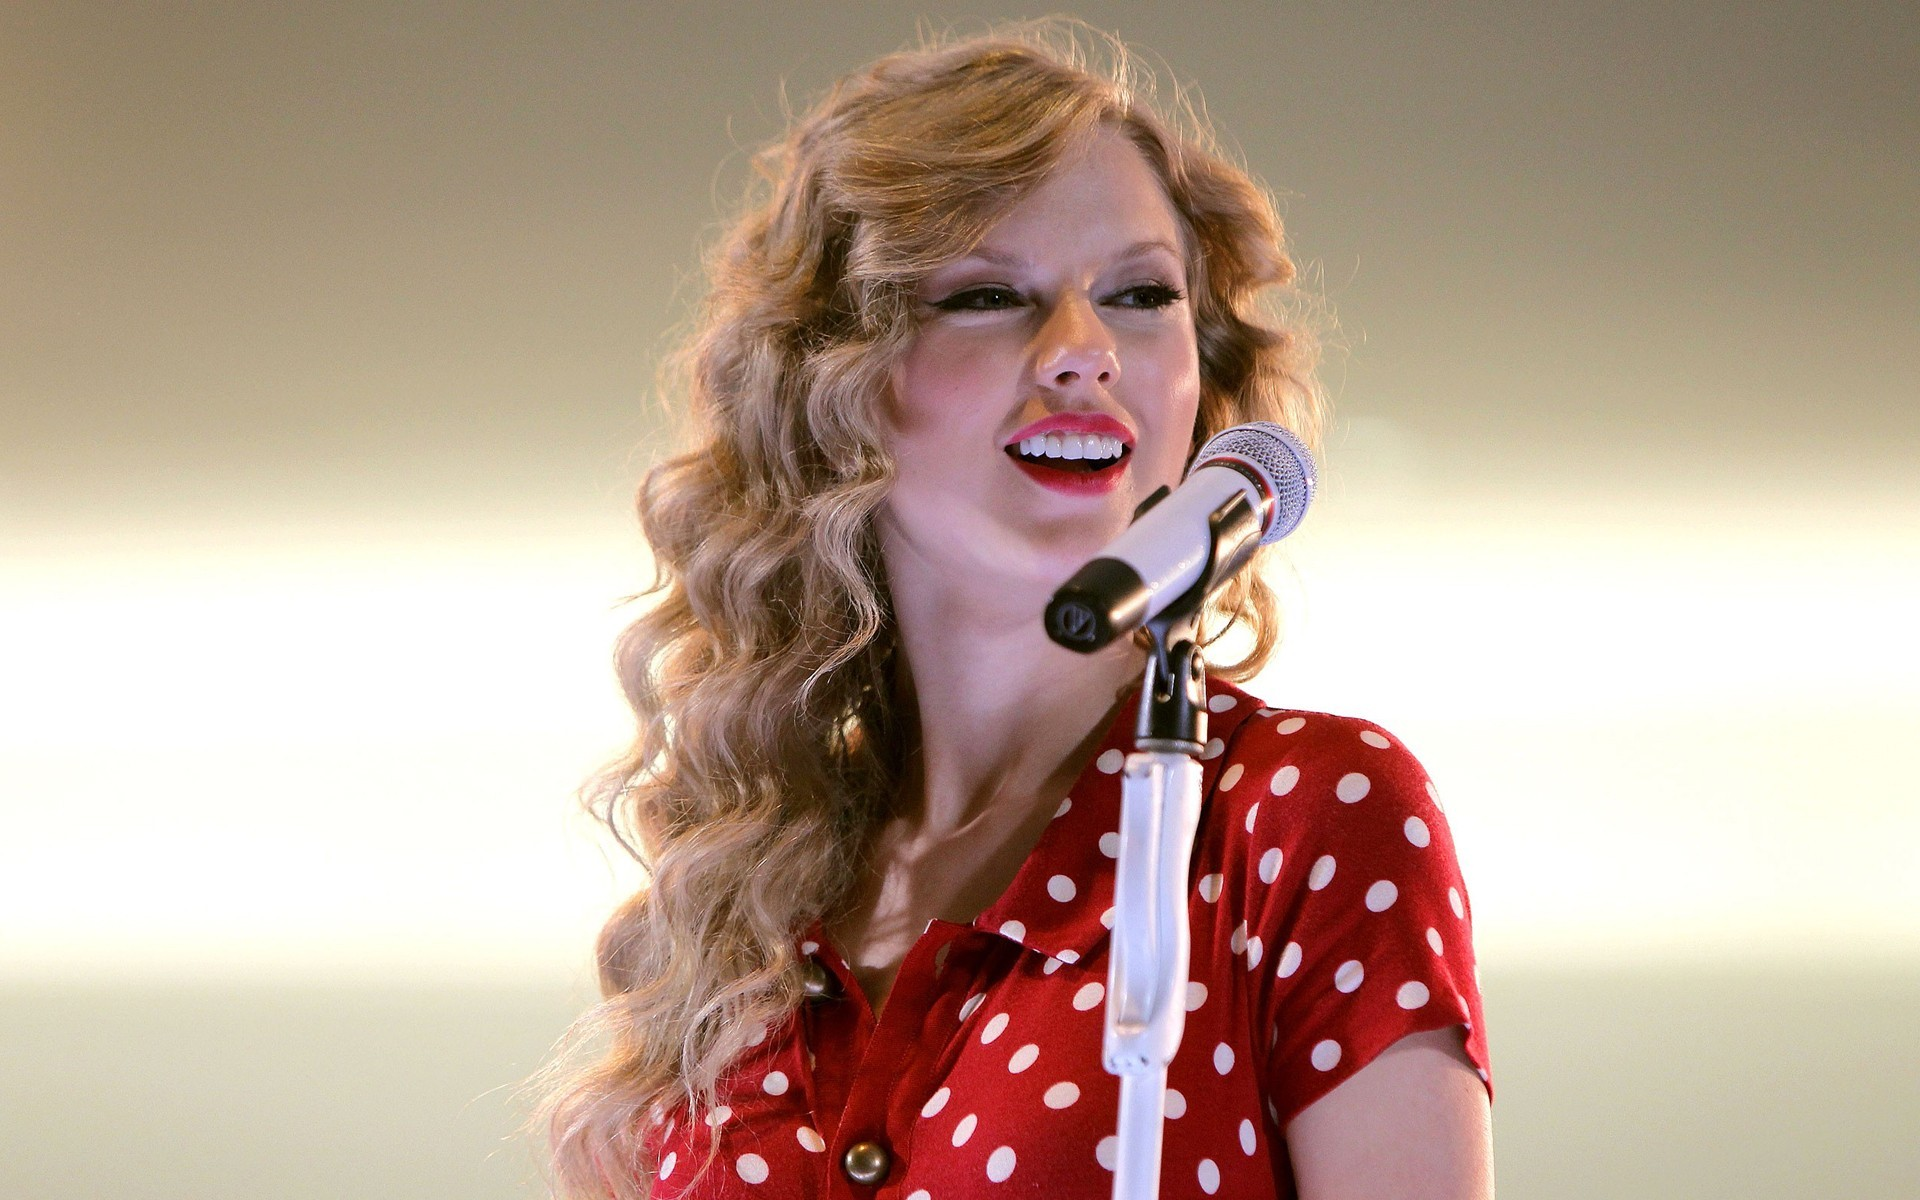 'TAYLOR SWIFT' GIVES REALLY INSPIRING INSIGHT INTO HER SUCCESSFUL CAREER & LIFE SO FAR!